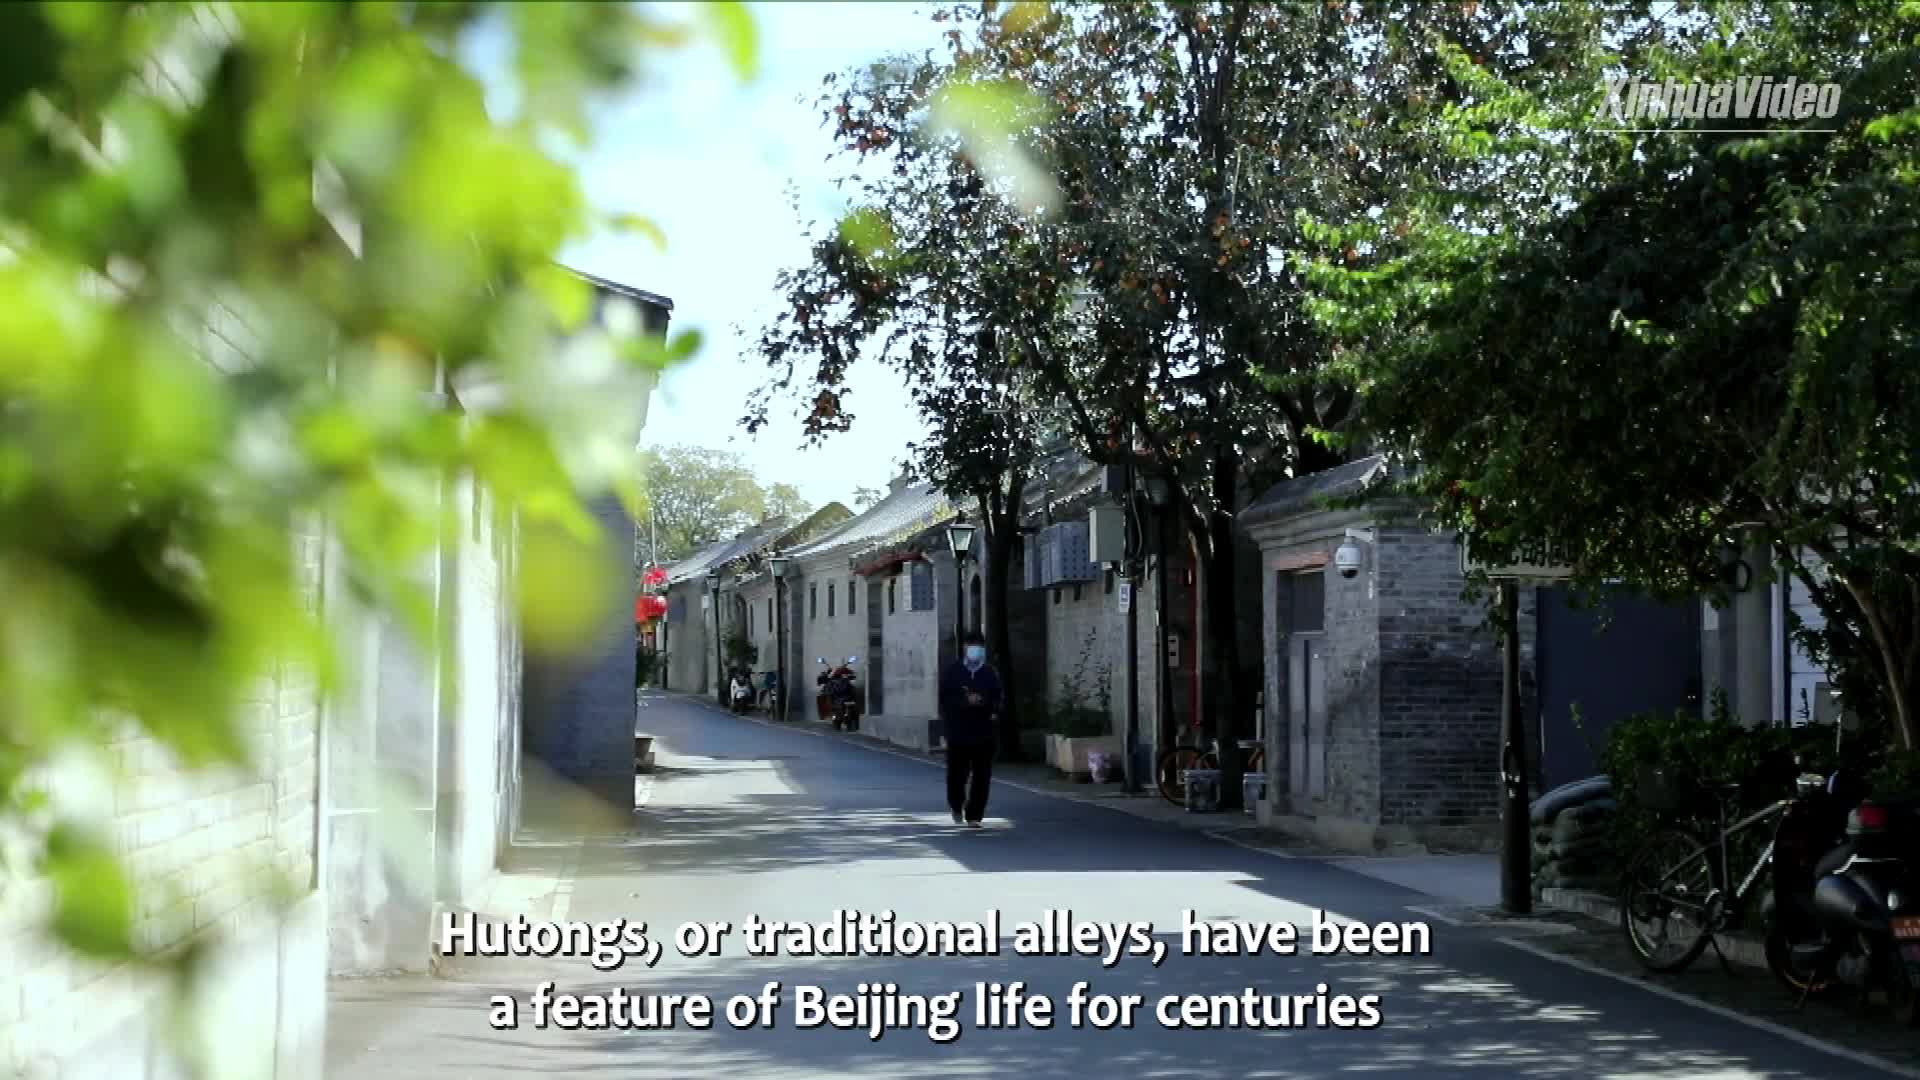 Beijing hutong residents embrace new life